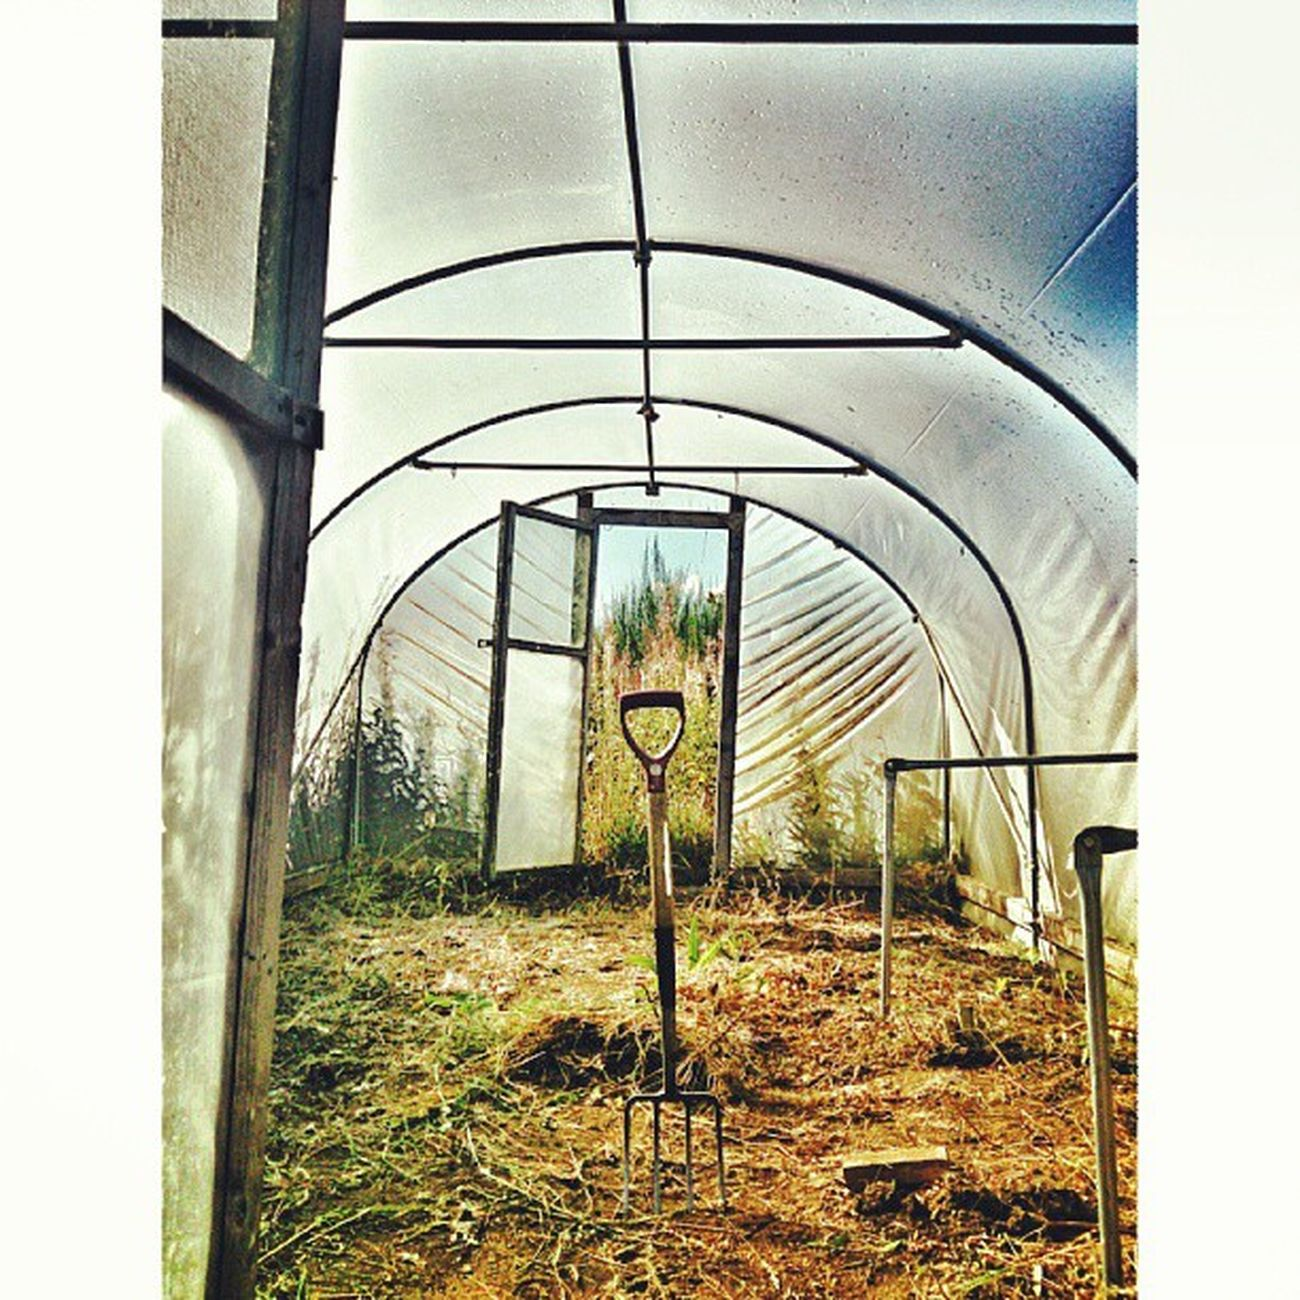 Todays mission complete :) Mycamerastories Polytunnel Mission Fork garden repetition weeding hardwork missioncomplete frame handle aberdeenshire scotland